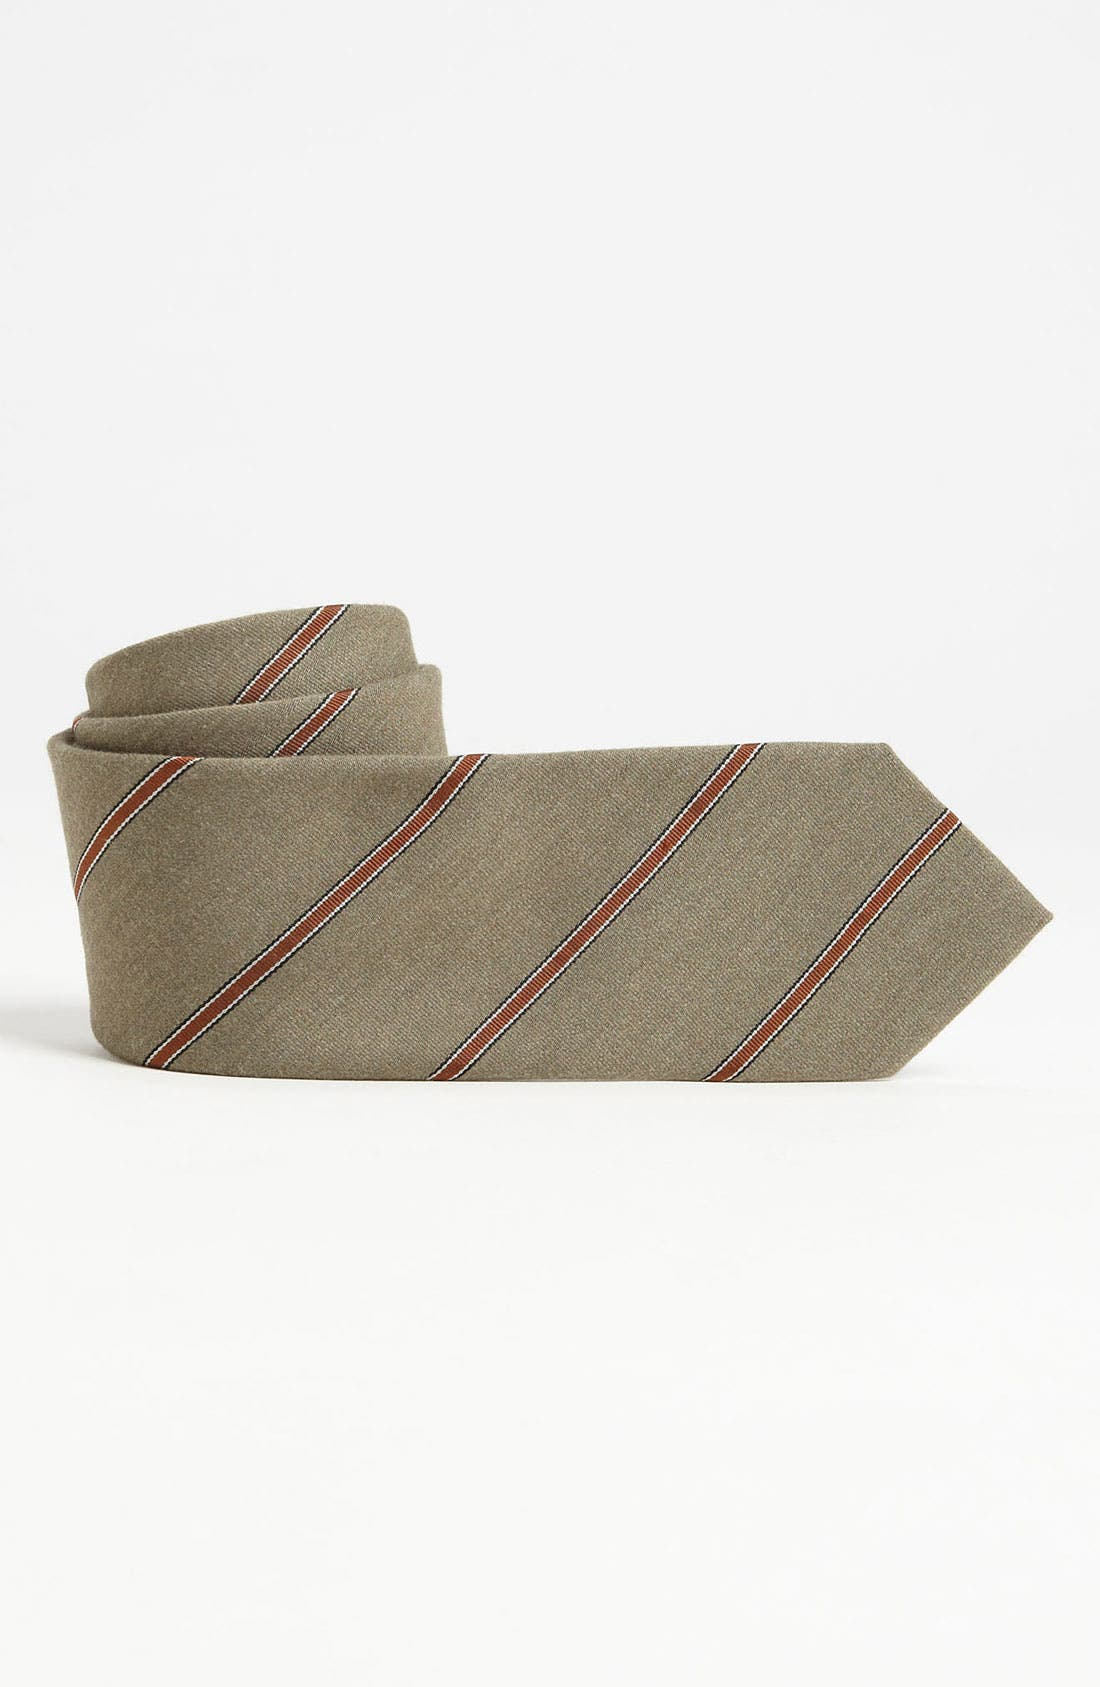 Alternate Image 1 Selected - Nordstrom Woven Tie (Big Boys)